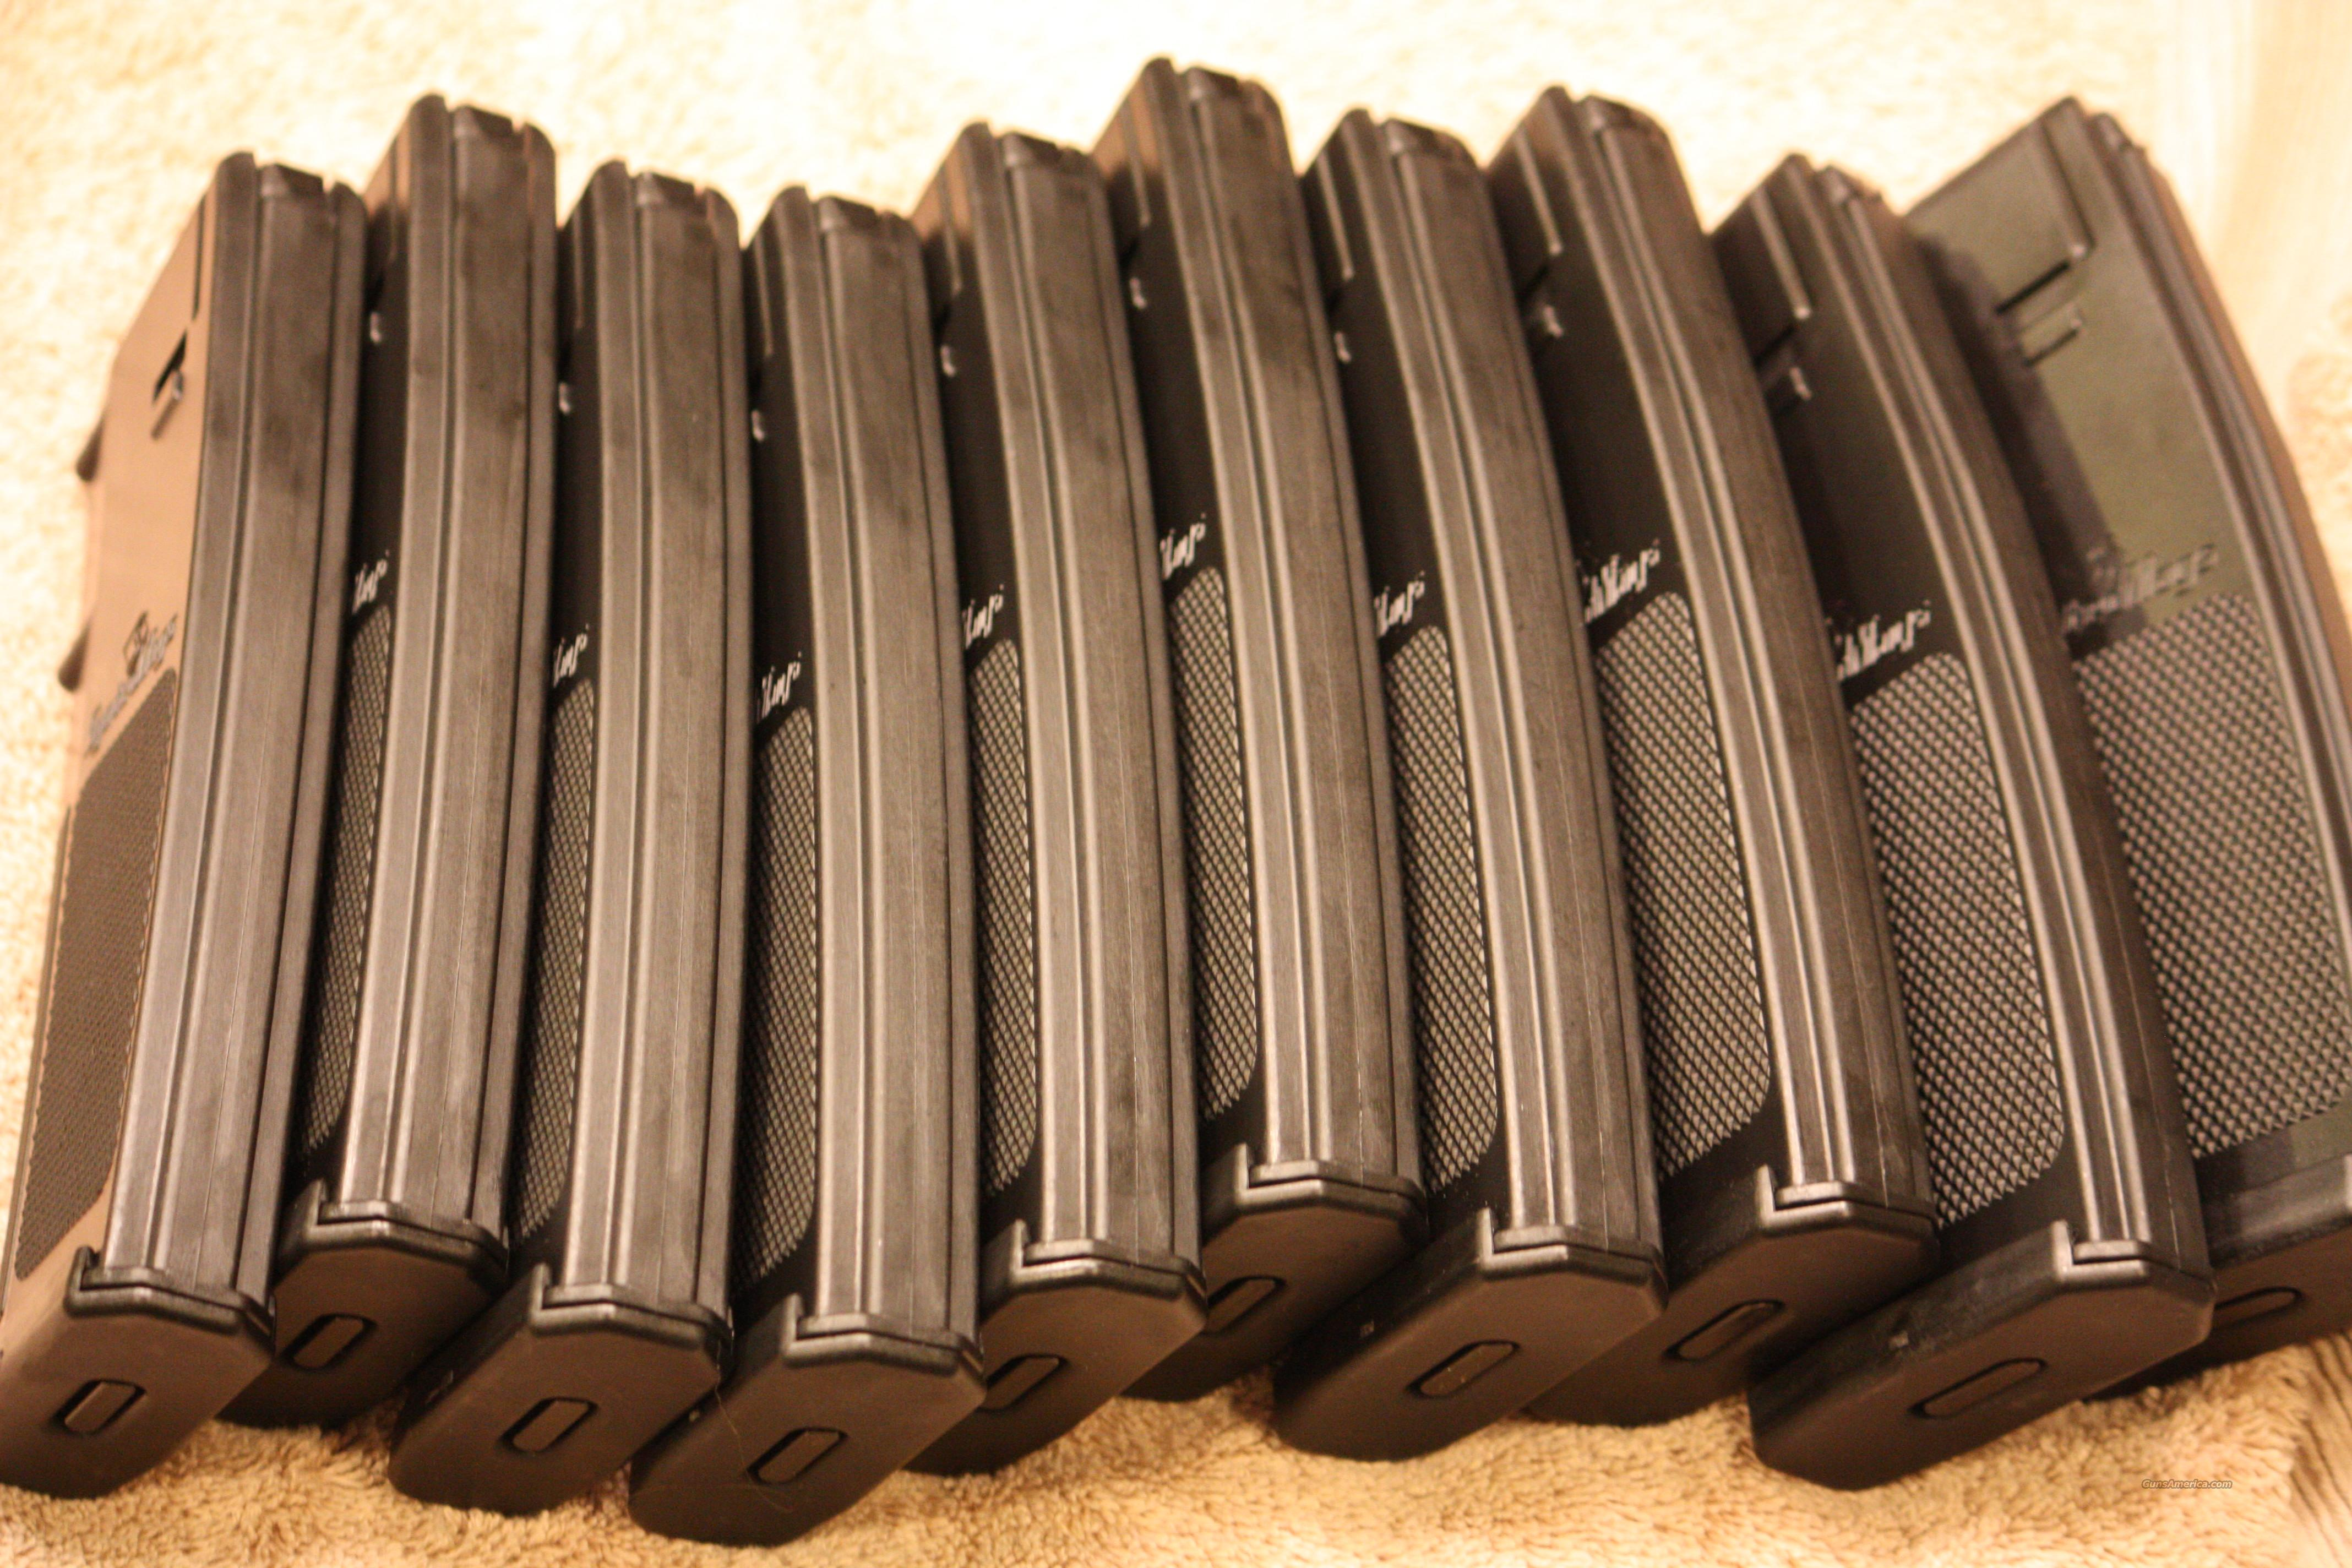 10 New .223 AR-15 30rd Magazine clips, Not Magpul  Non-Guns > Magazines & Clips > Rifle Magazines > AR-15 Type